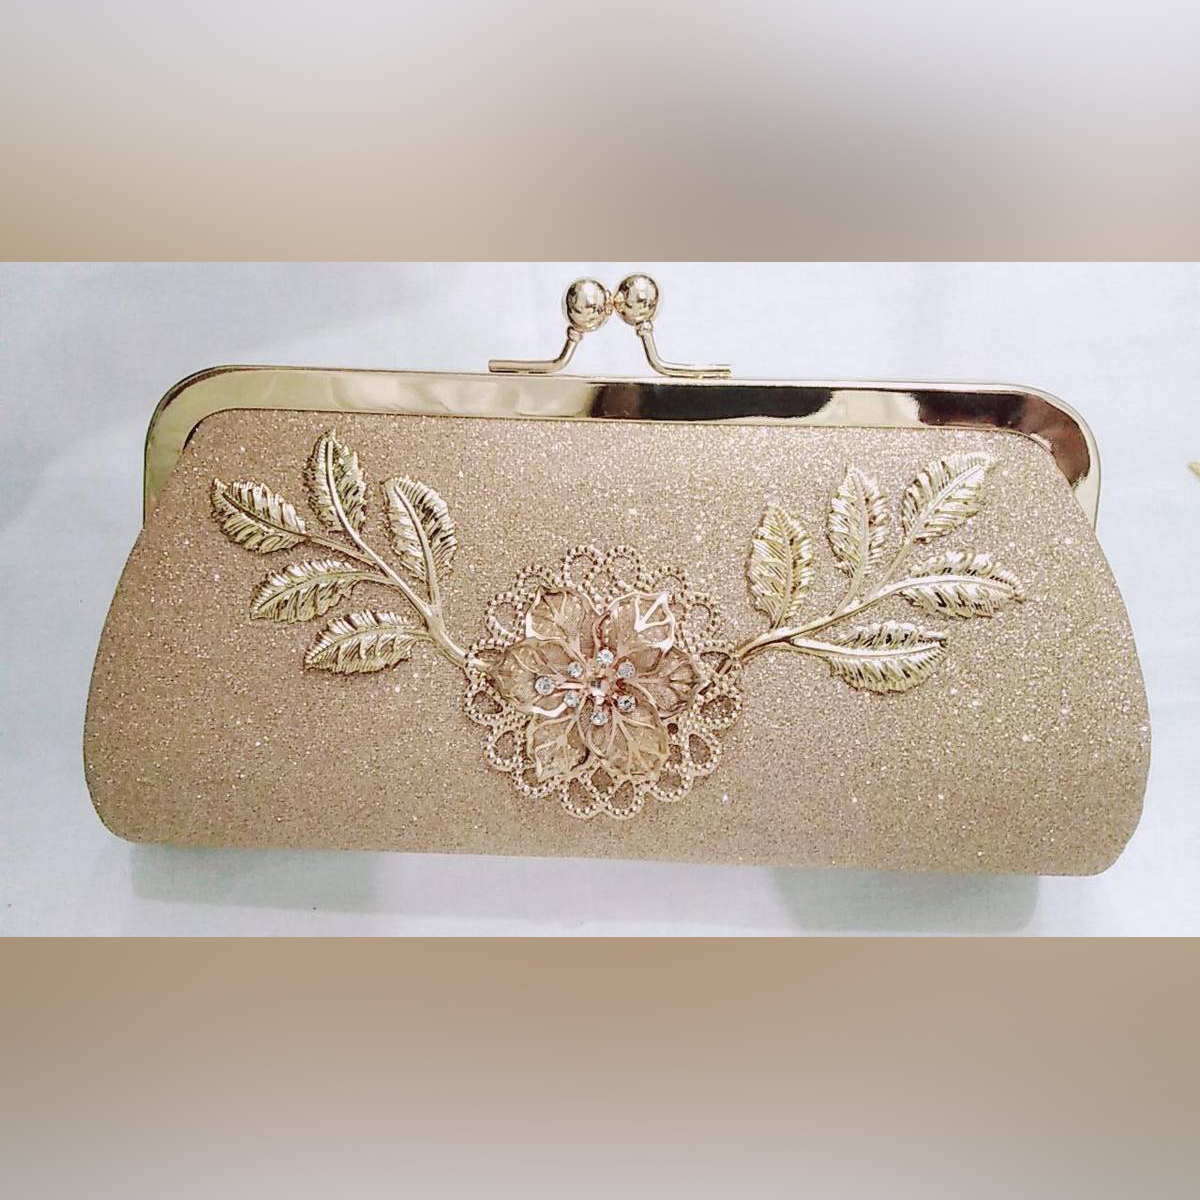 Stylish Bridal clutch with front flower design